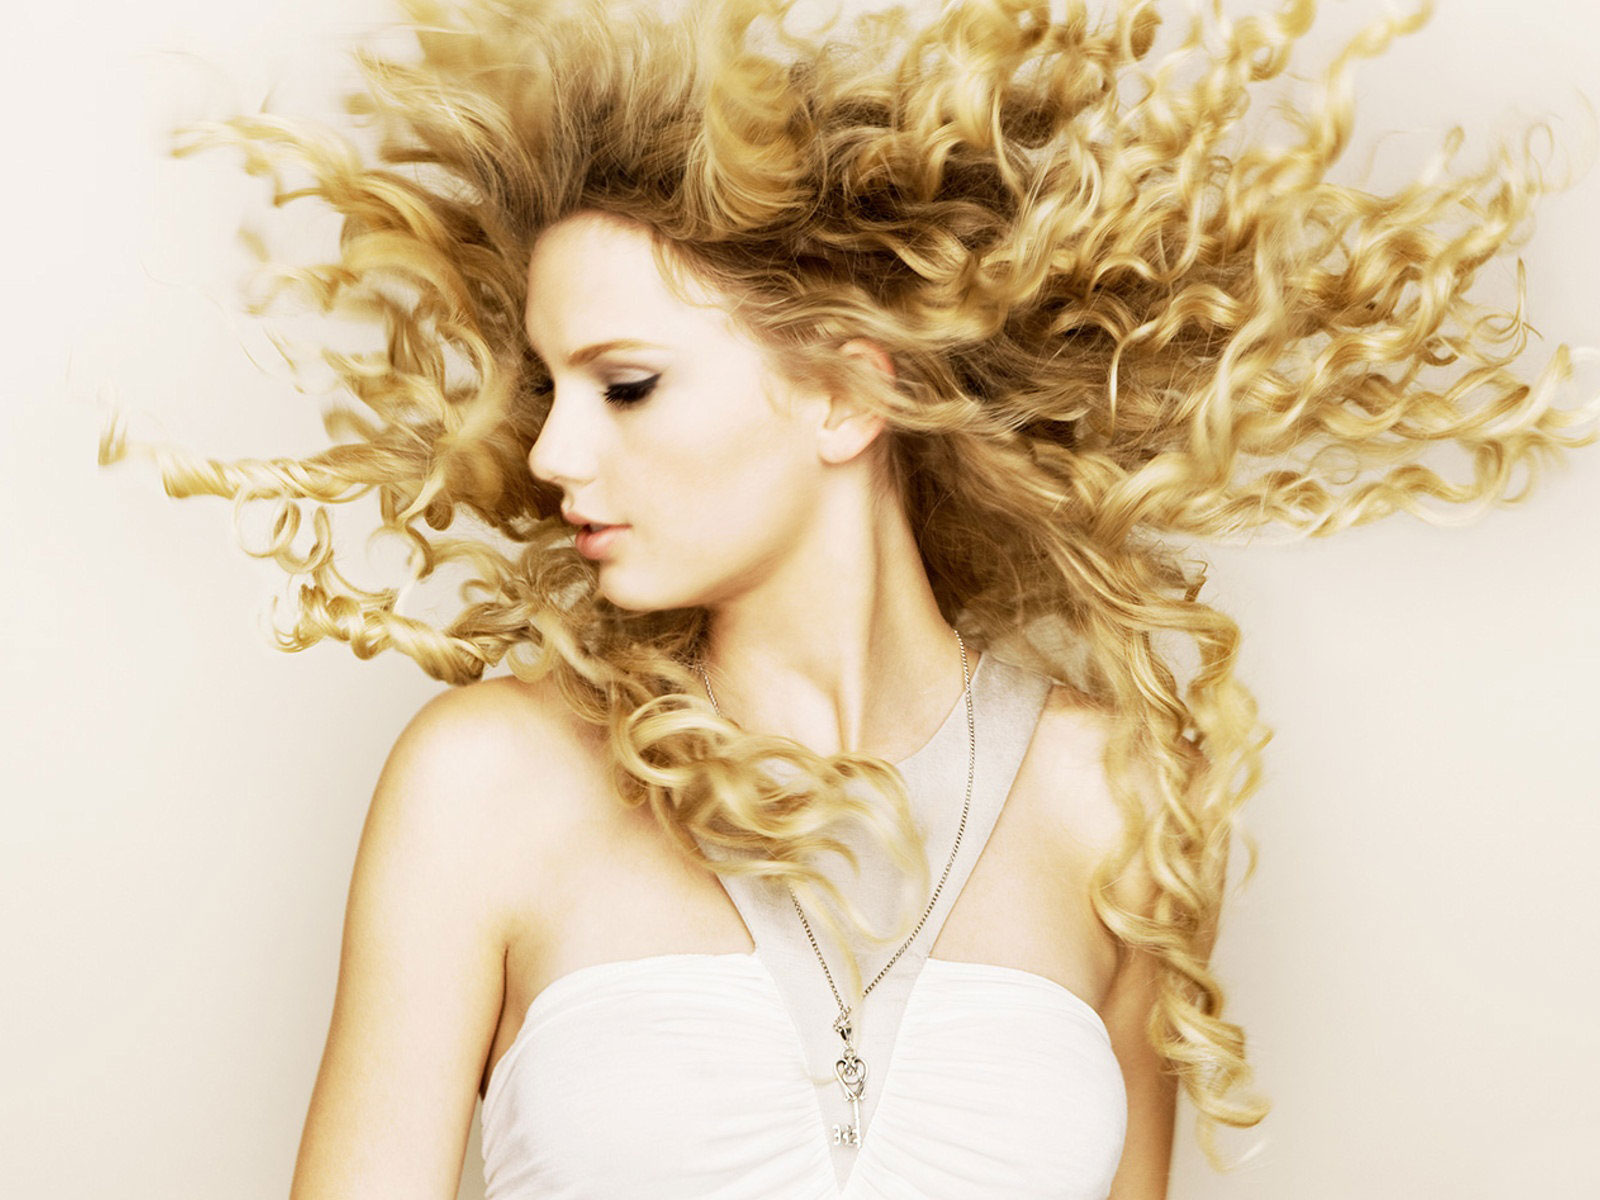 http://3.bp.blogspot.com/-JcKGdEHtZcs/TxQgEaAdHII/AAAAAAAABBo/8meQ15k2_ds/s1600/Taylor-Swift-Wallpapers-HD-5.jpg